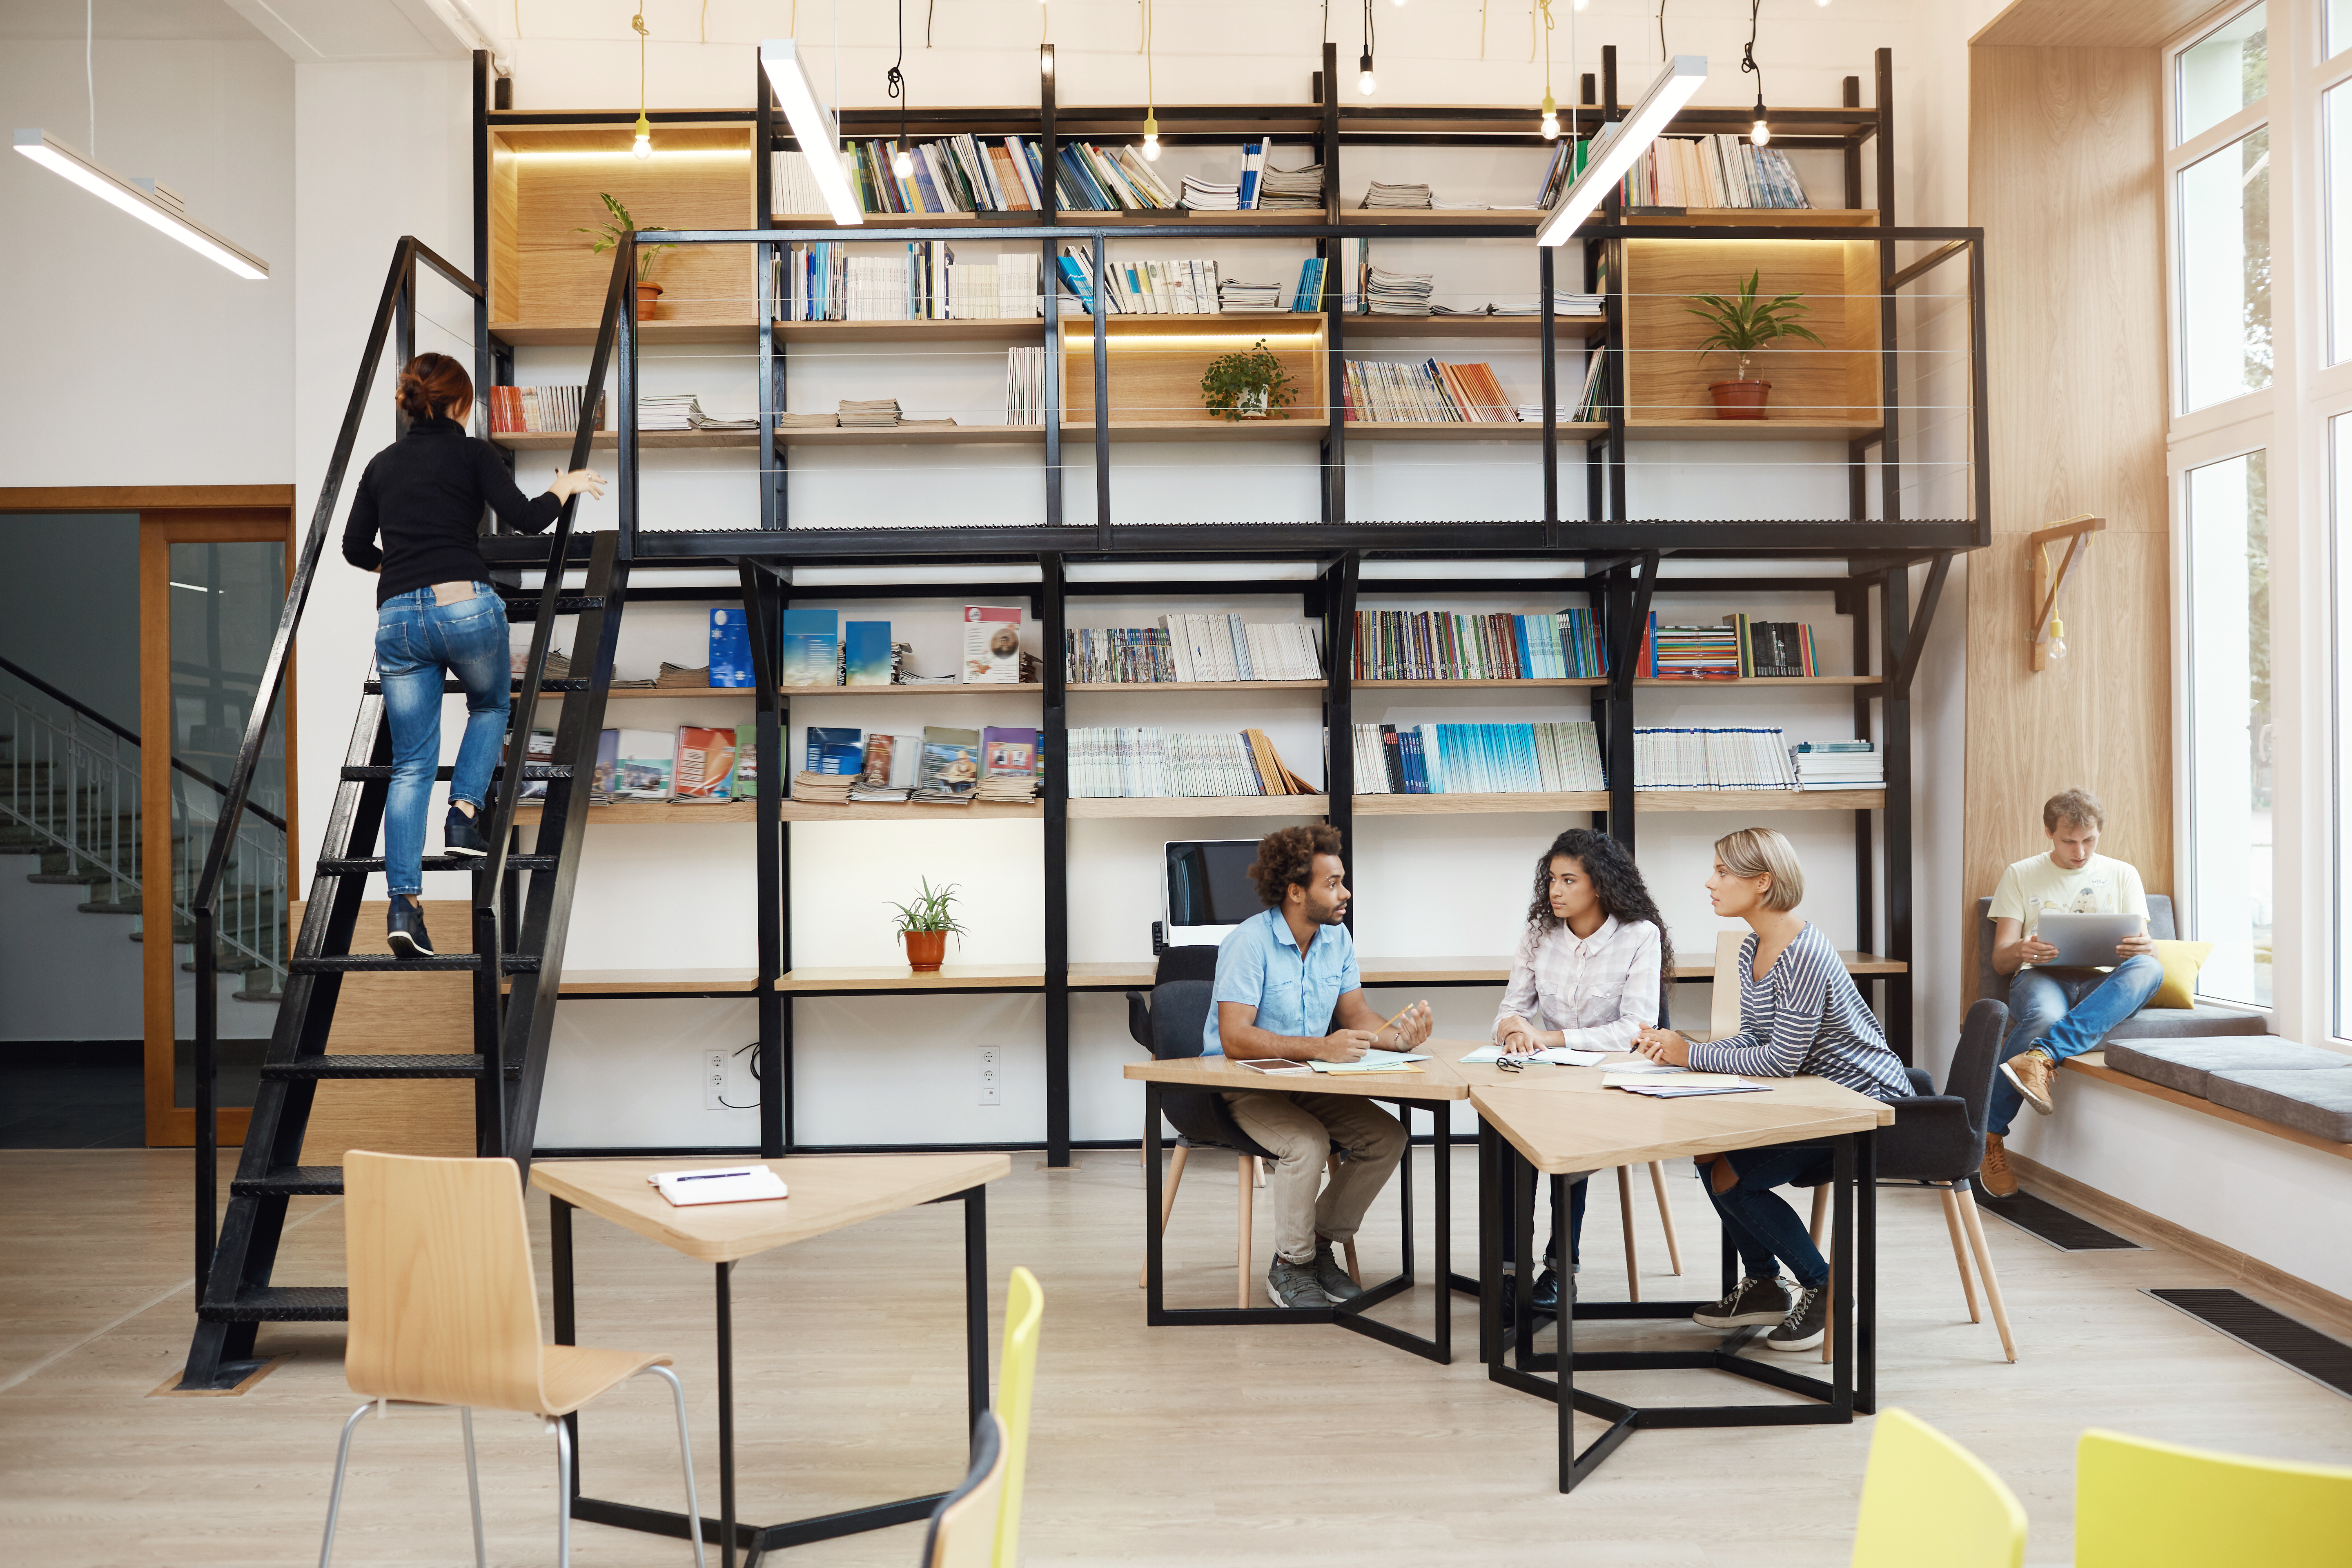 three-young-perspective-startupers-sitting-modern-light-library-meeting-talking-about-new-project-lo